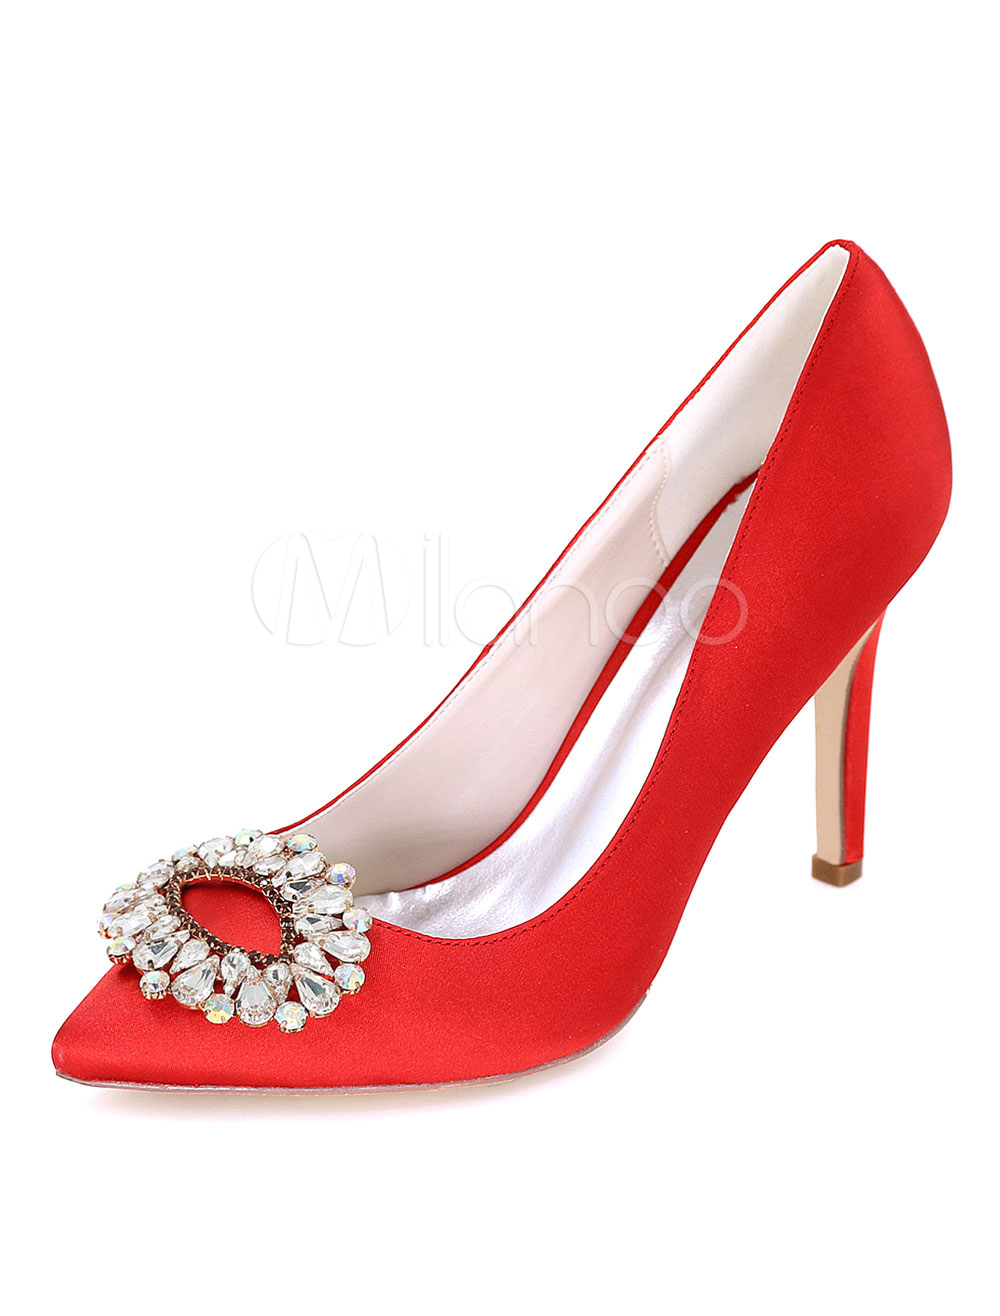 905ae6ae8 ... Pointed Toe Rhinestones Slip On High Heels-No. 12. 30%OFF. Color Red